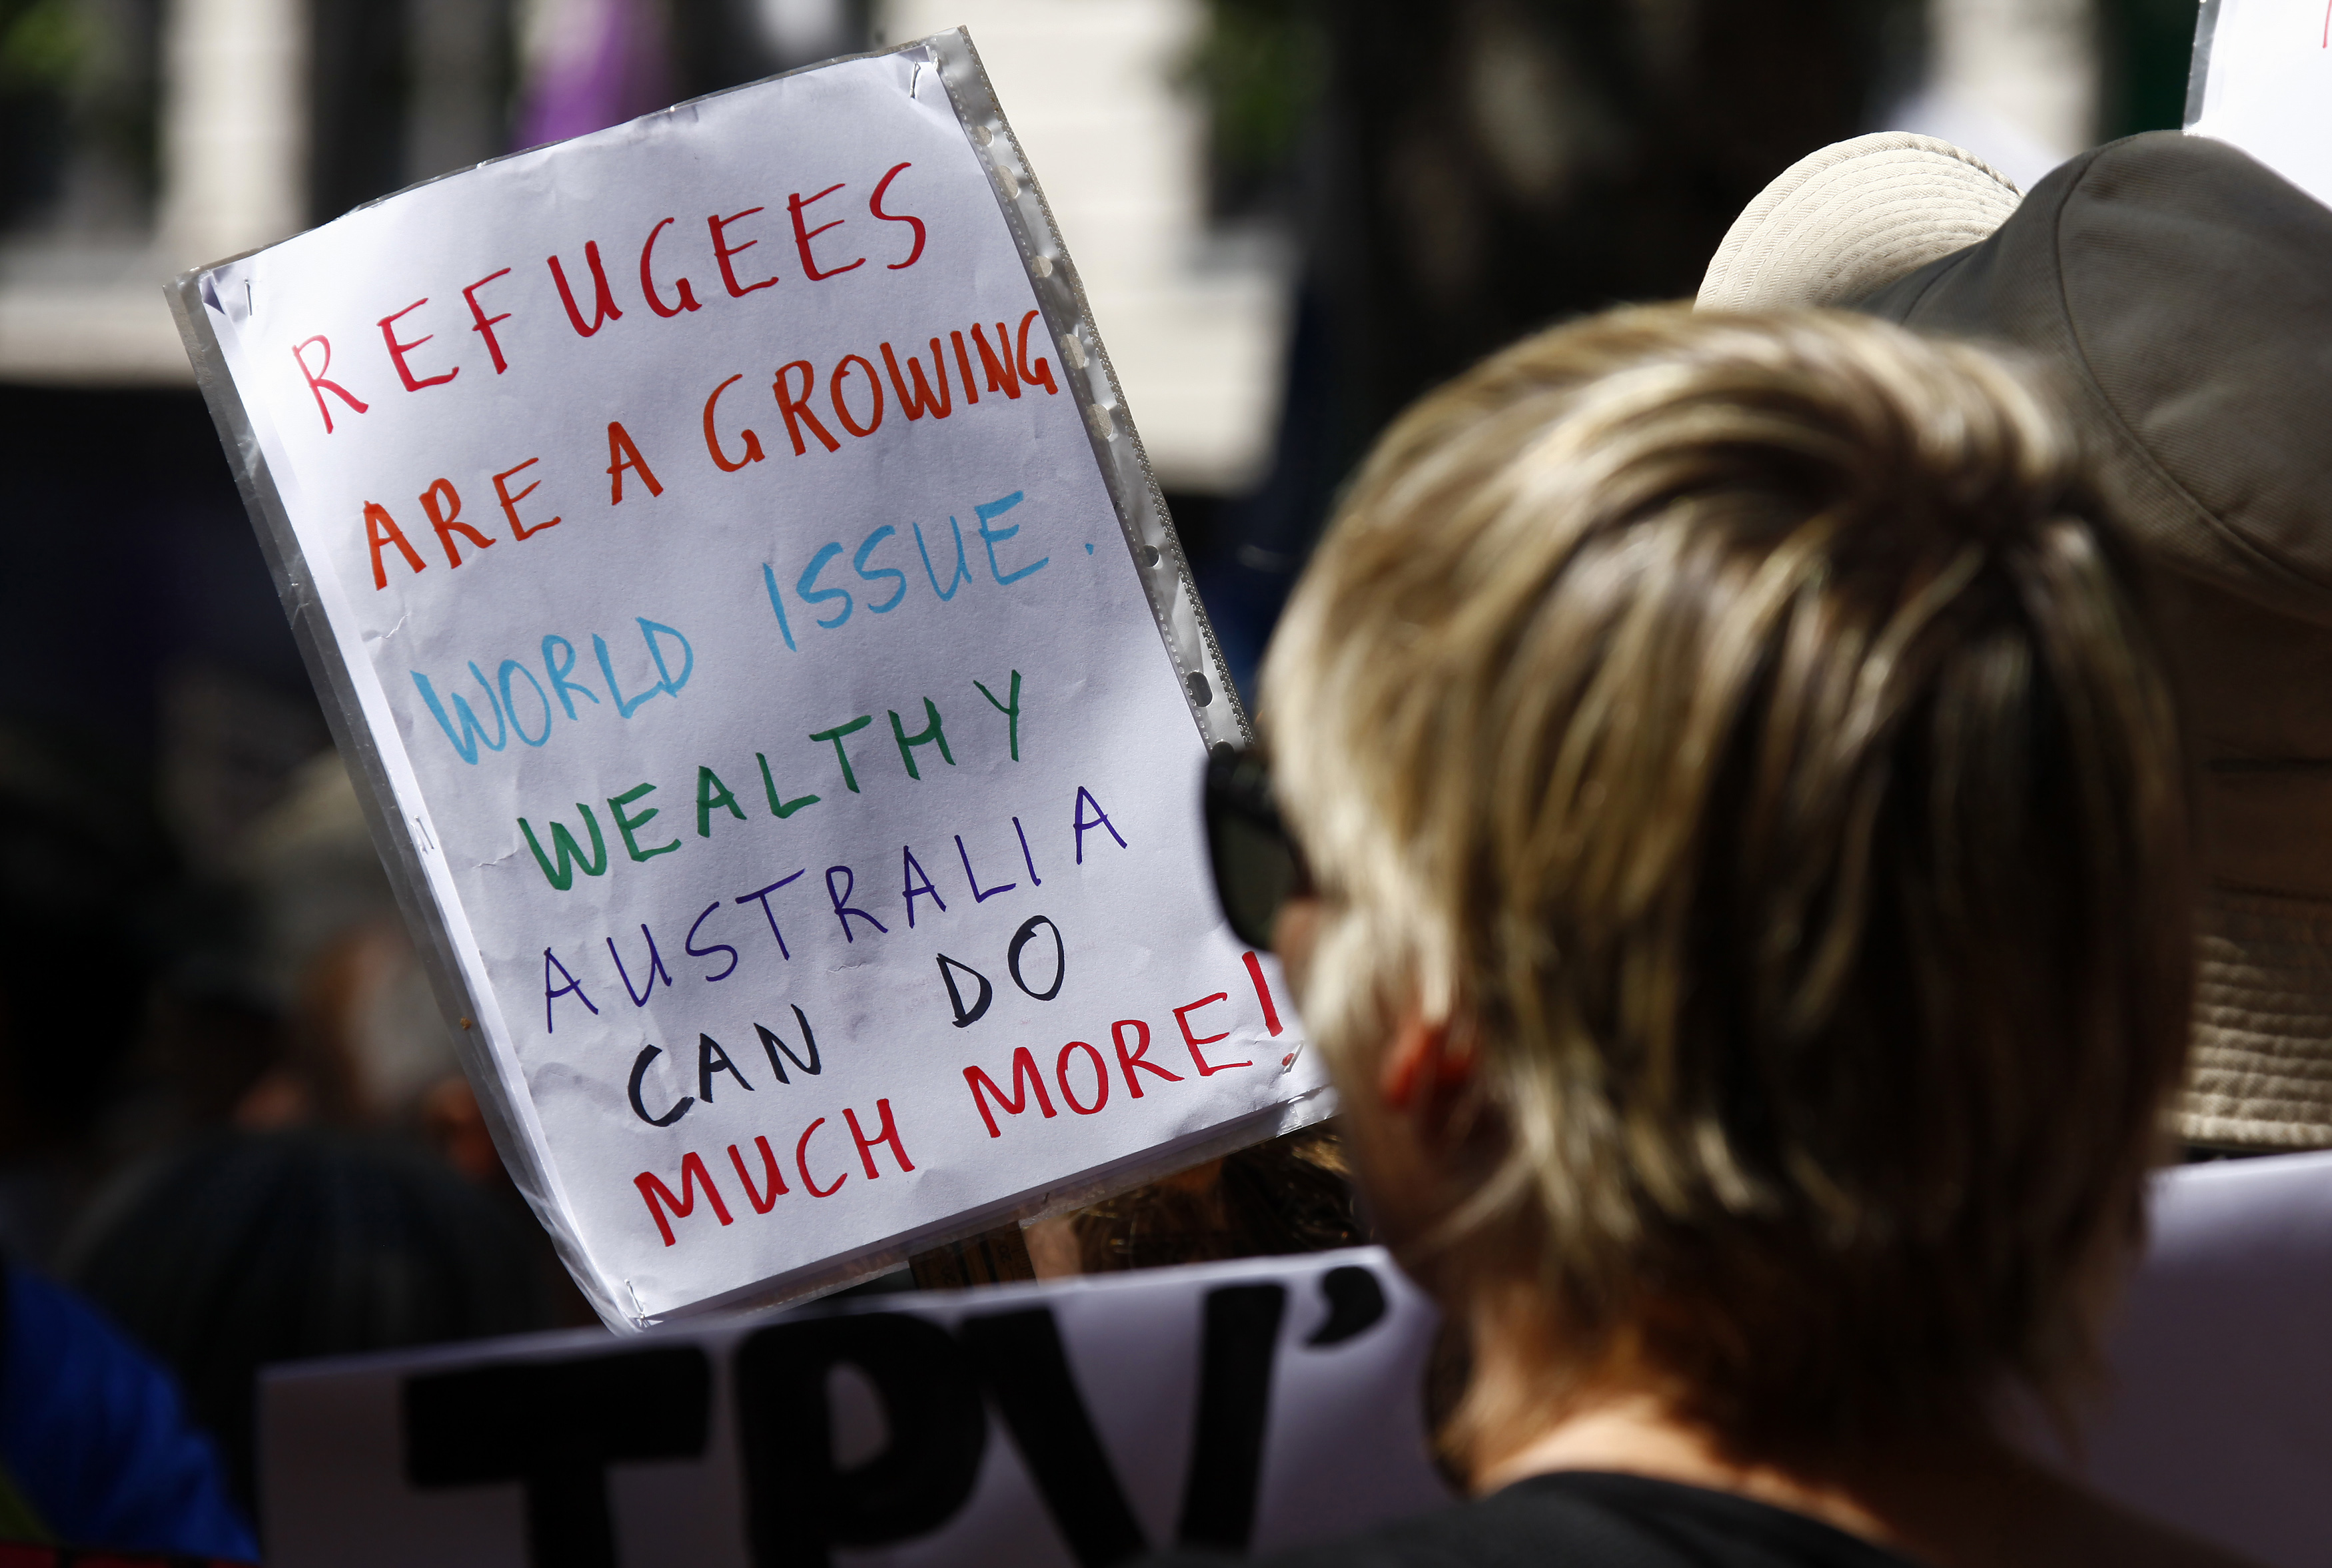 Protesters hold placards at the Stand up for Refugees rally held in central Sydney on Oct. 11, 2014